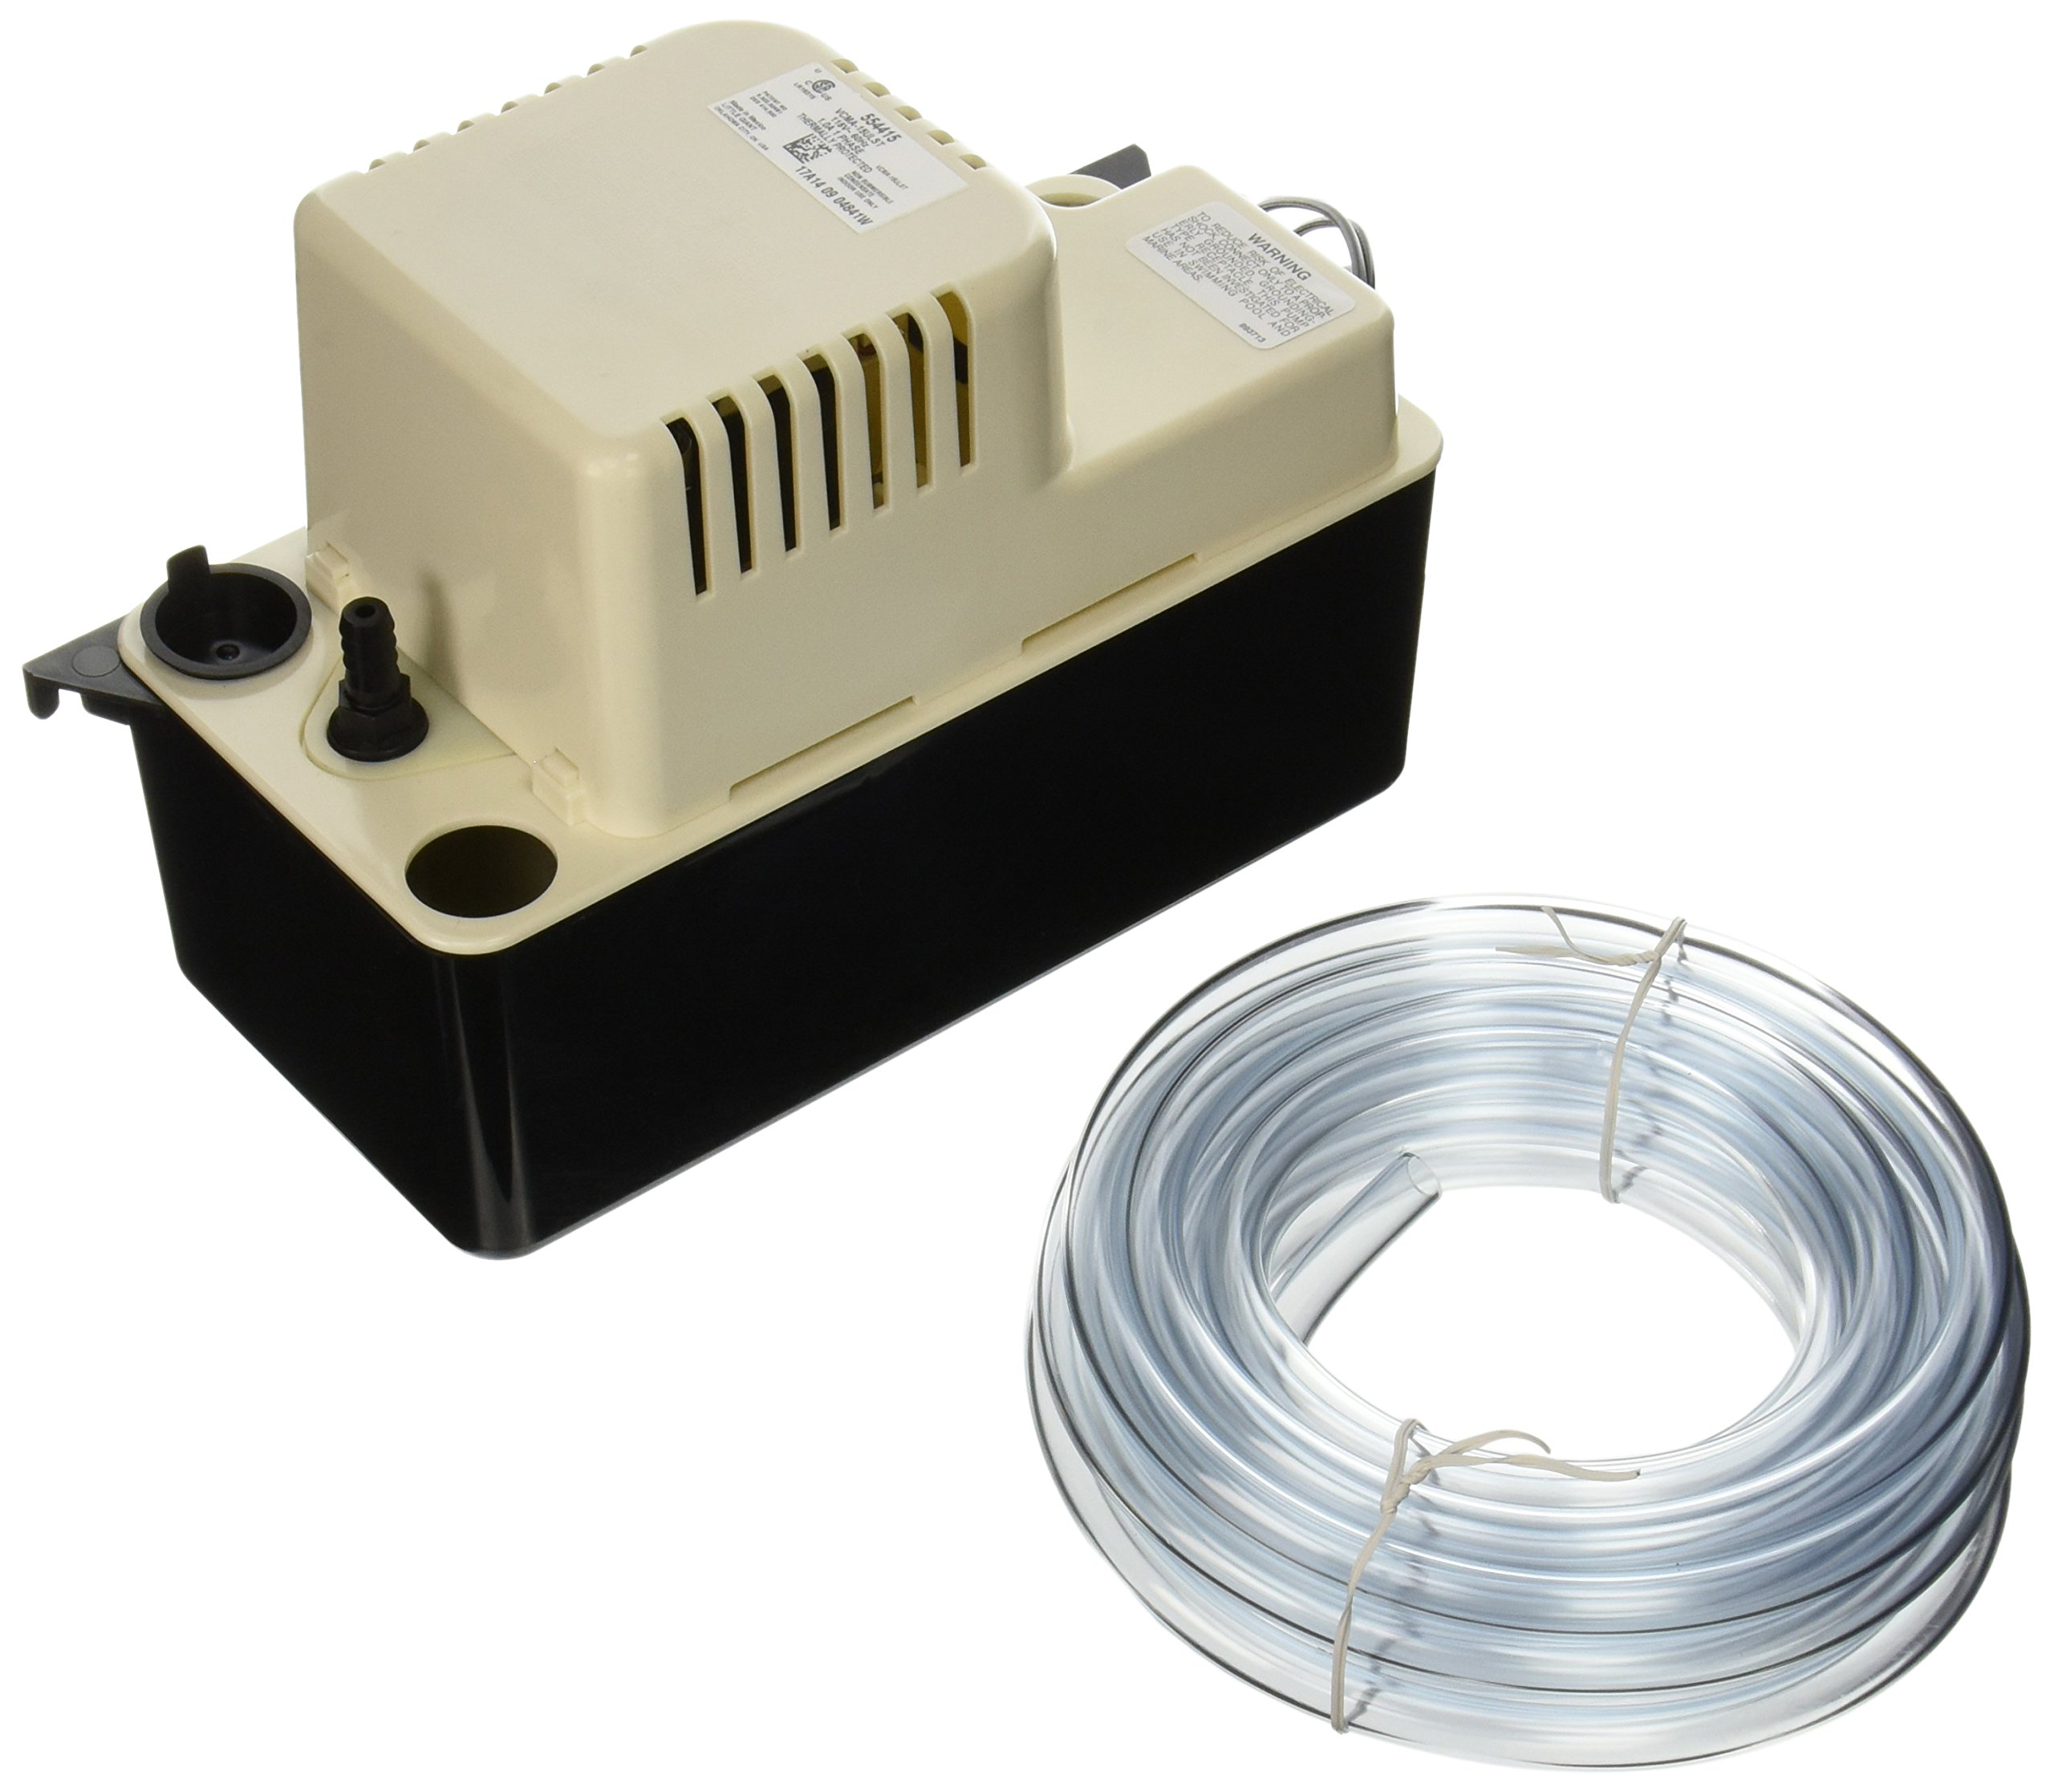 Little Giant 554415 65 GPH 115V Automatic Condensate Removal Pump with Safety Switch and 20ft. Tubing by LITTLE GIANT